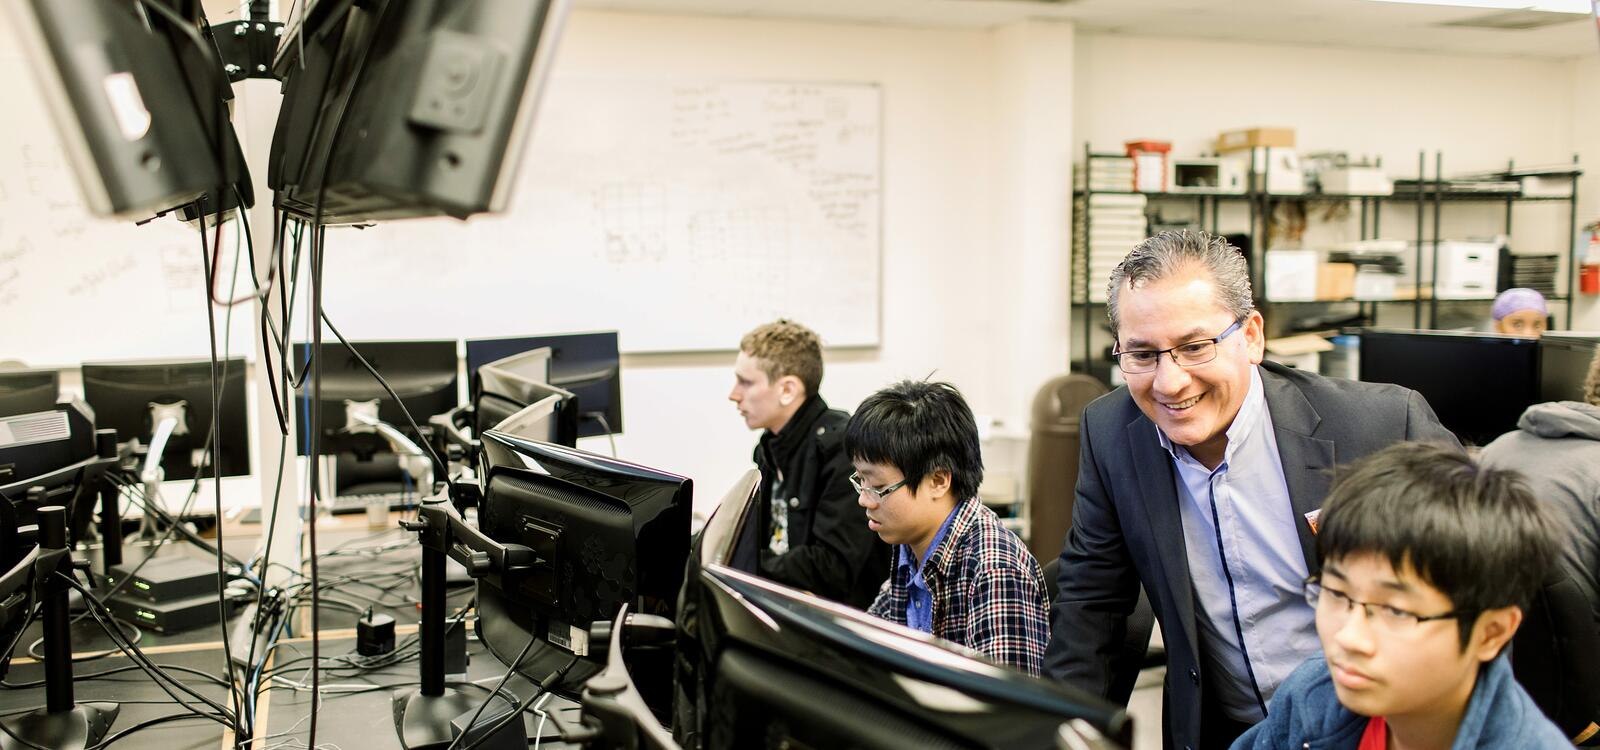 In a classroom filled with computers, a professor smiles as he looks over his student's computer screen